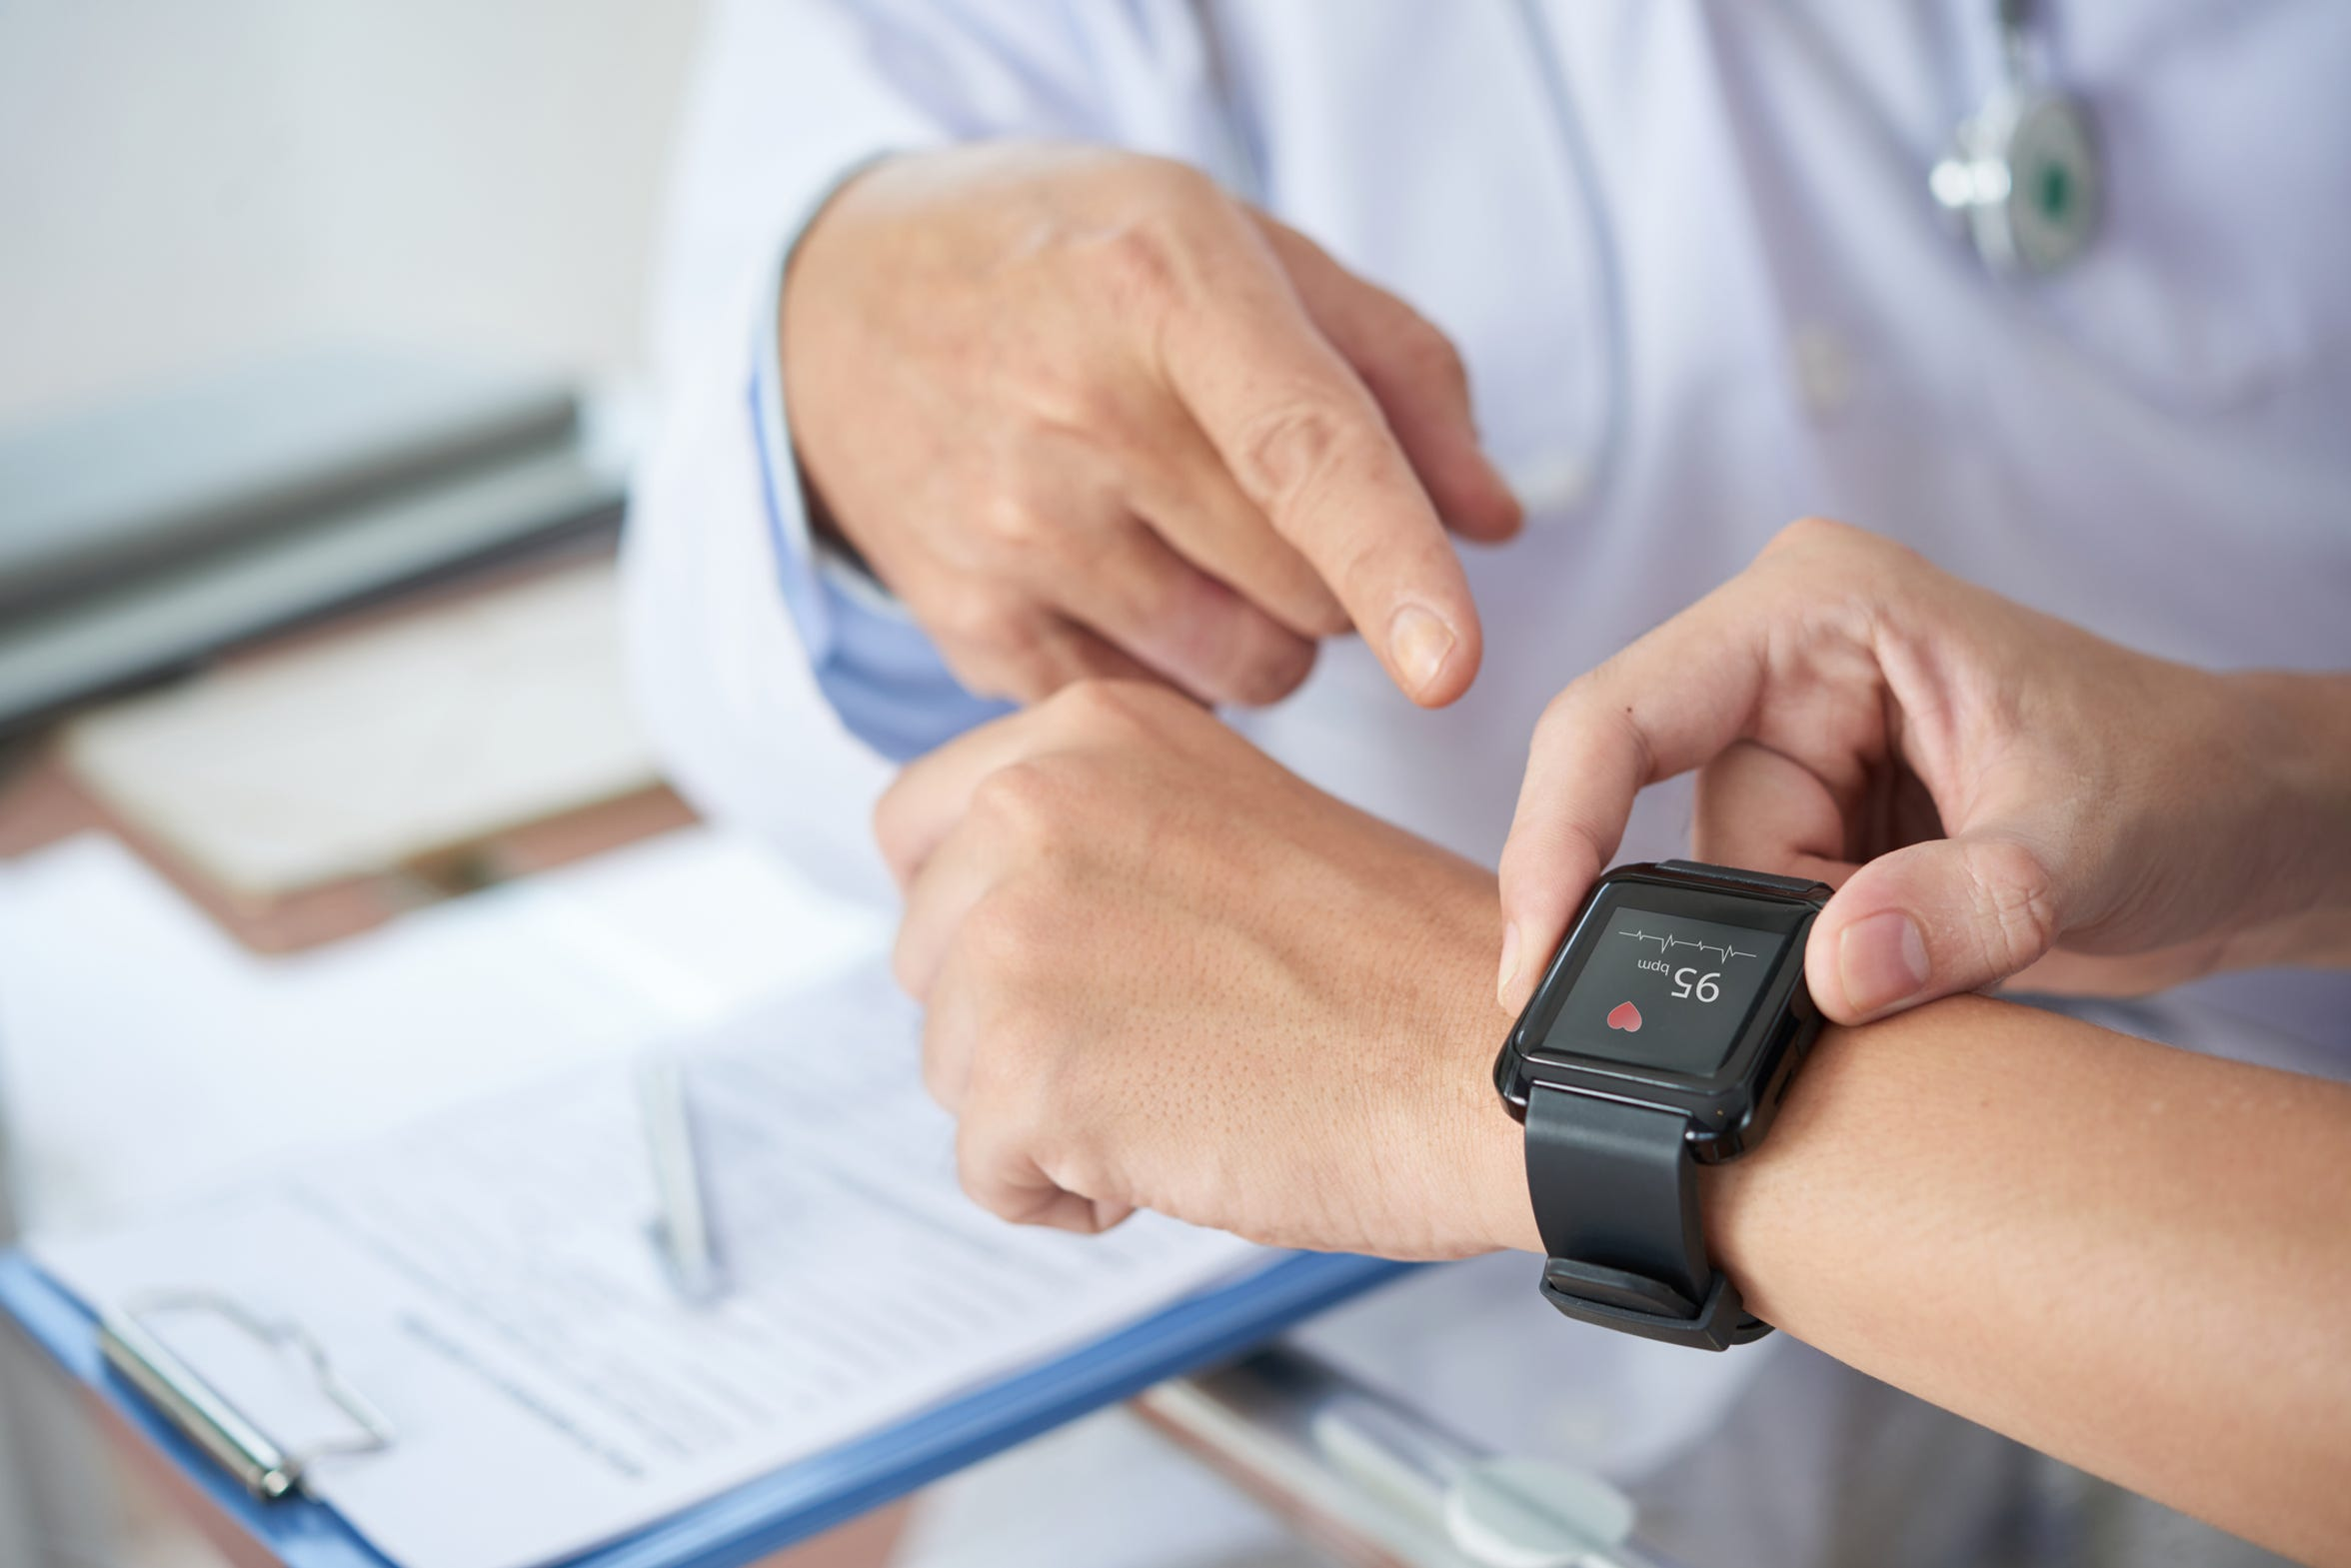 VCR patients wear fitness trackers that are monitored remotely by specially-trained cardiac nurses.